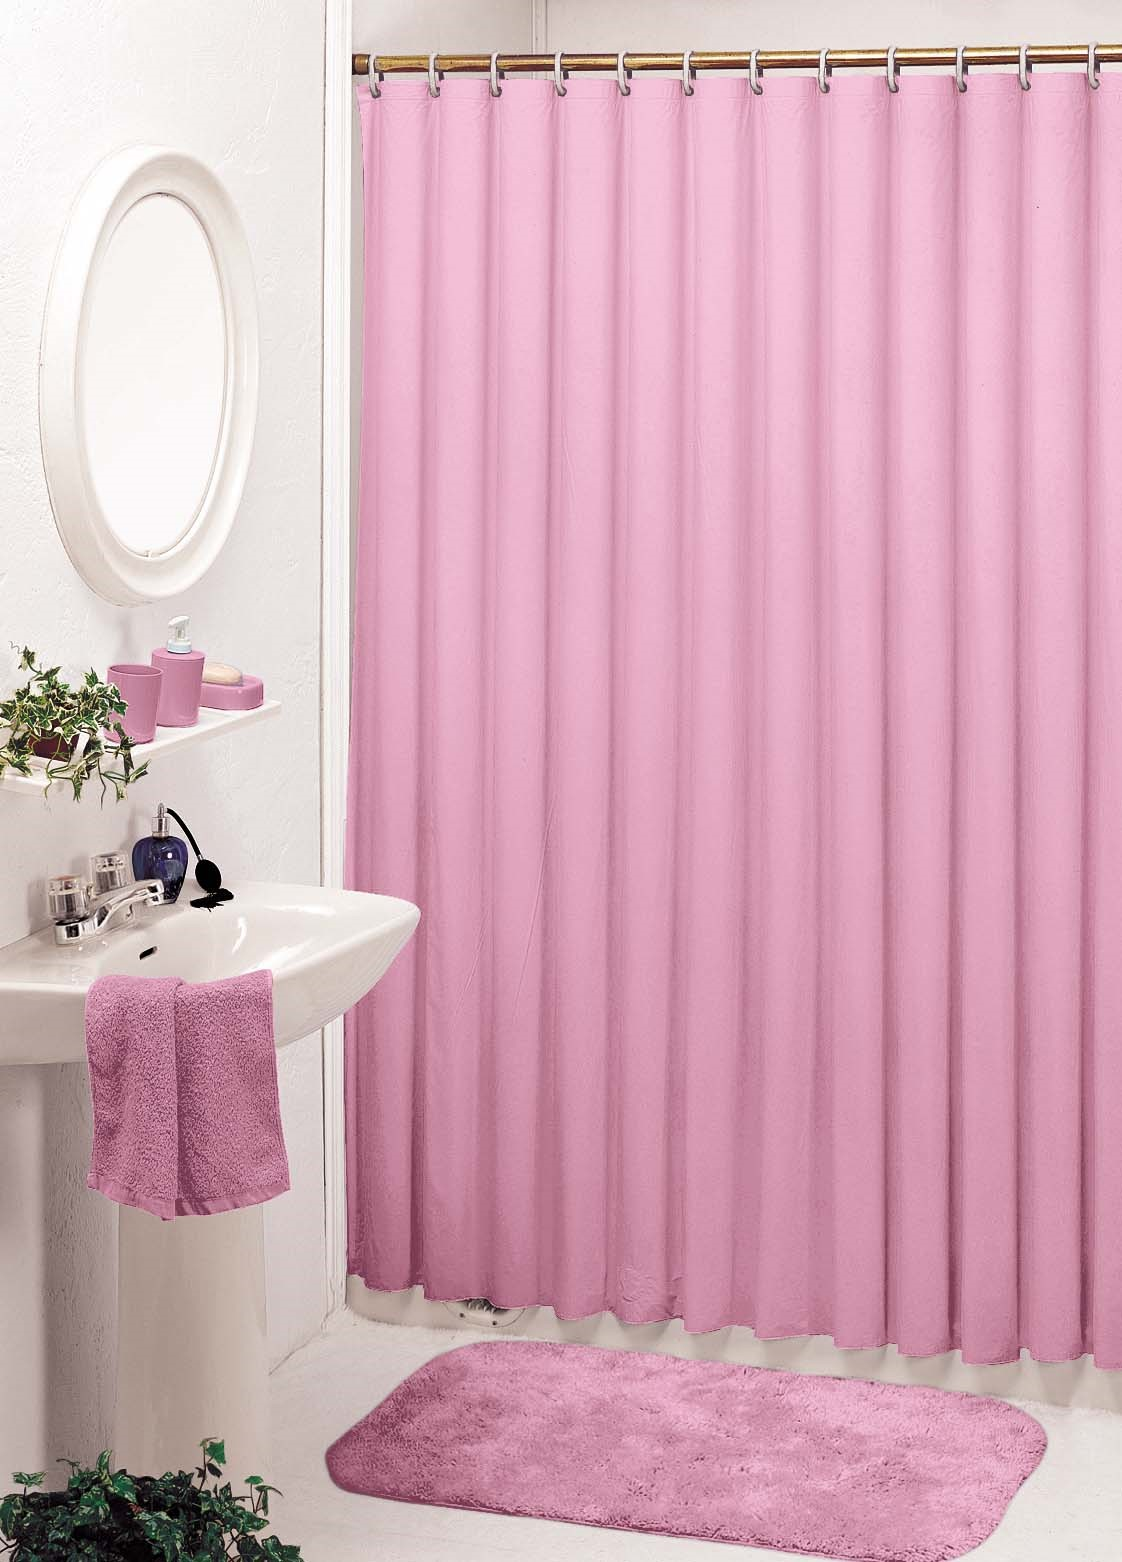 World houseware producing company limited for Plain pink shower curtain